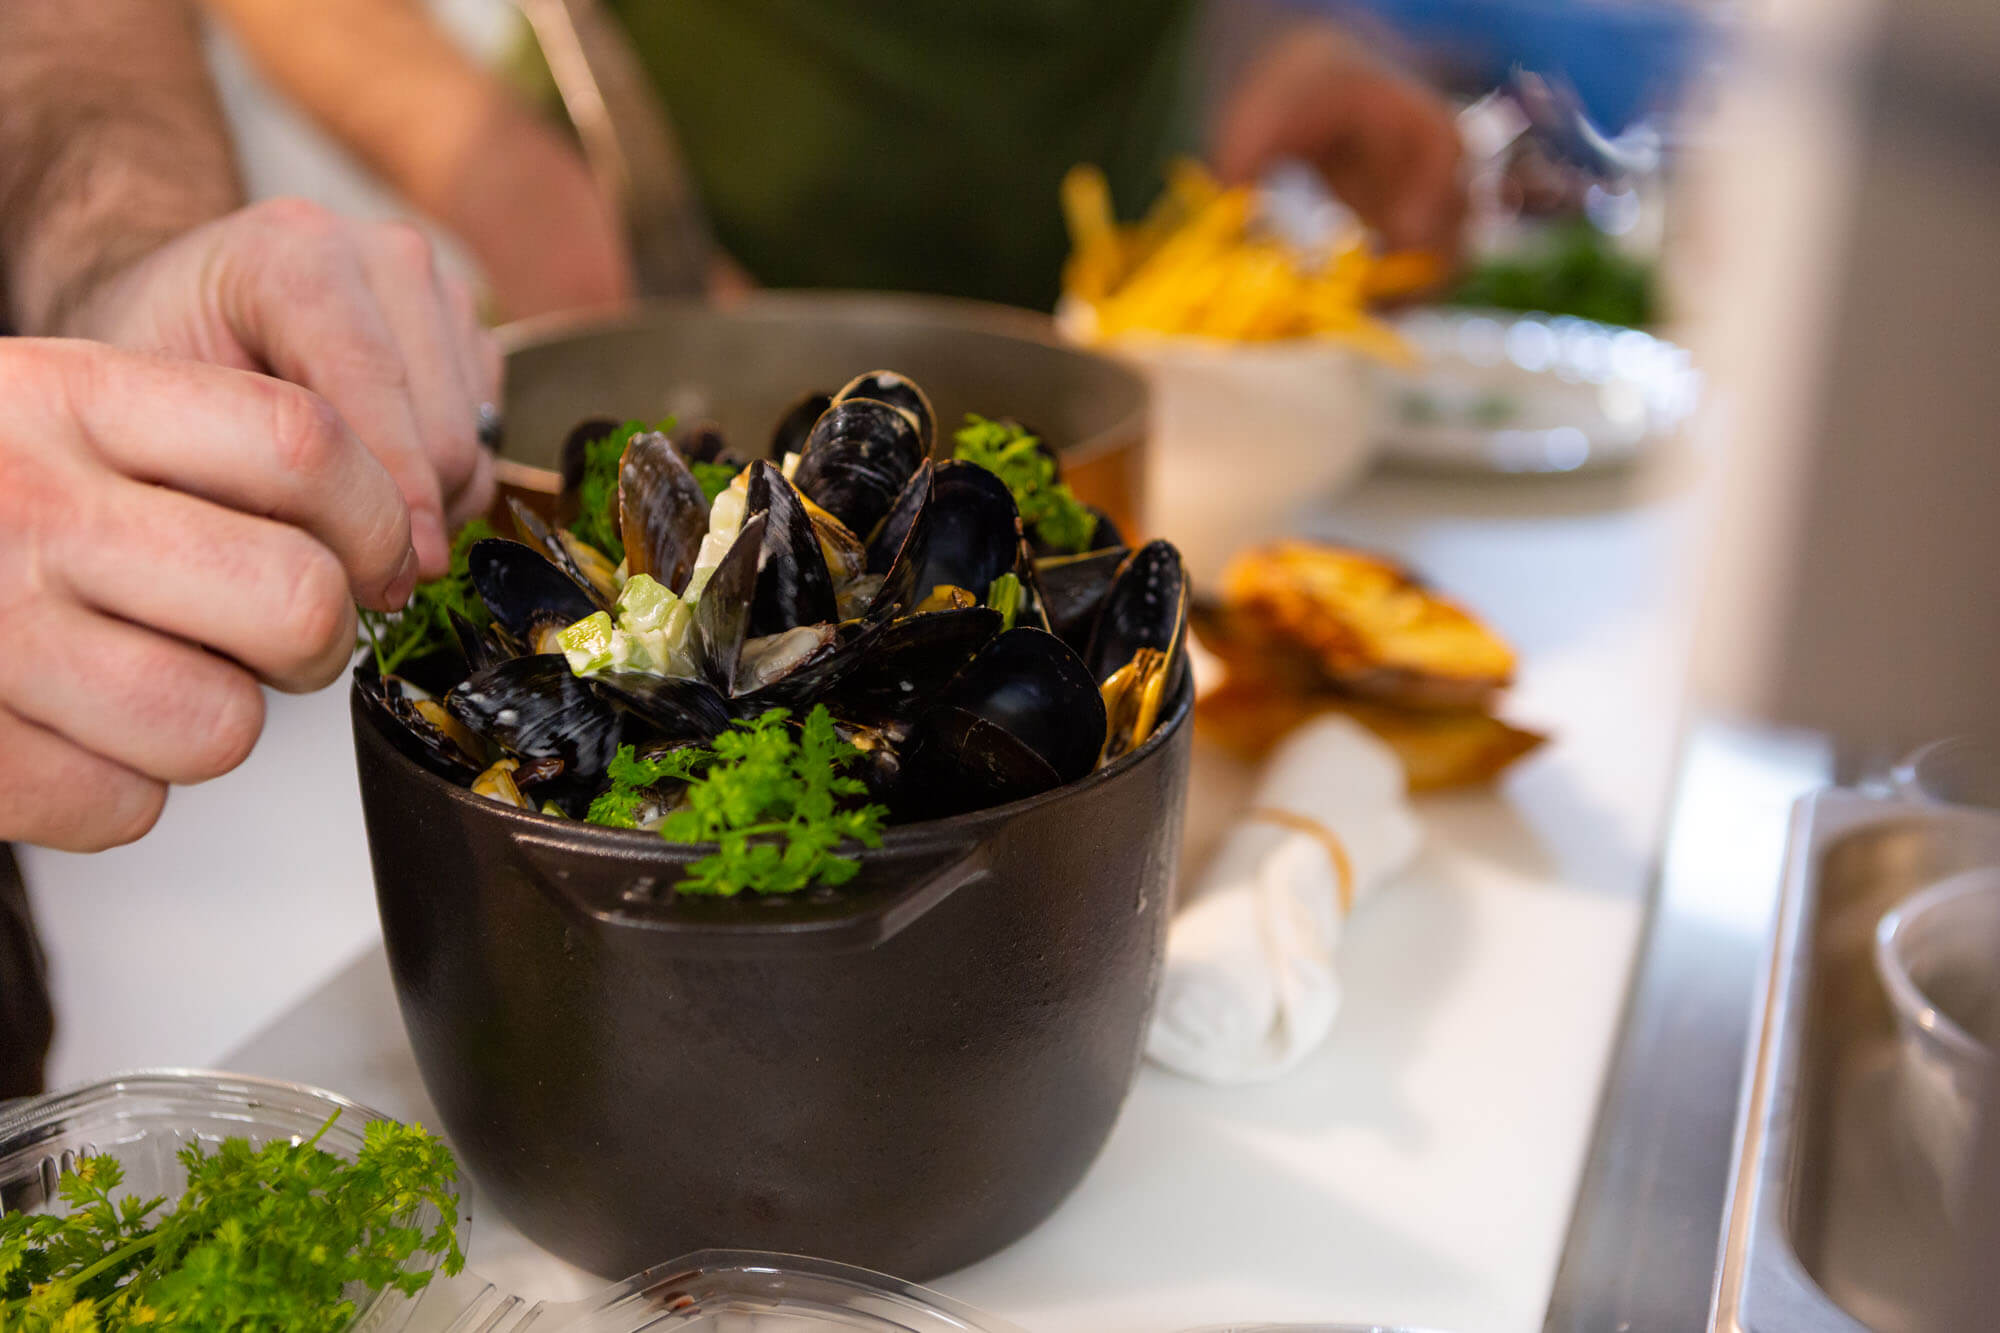 Chef placing garnishes on moules frite in the Maison Selby kitchen